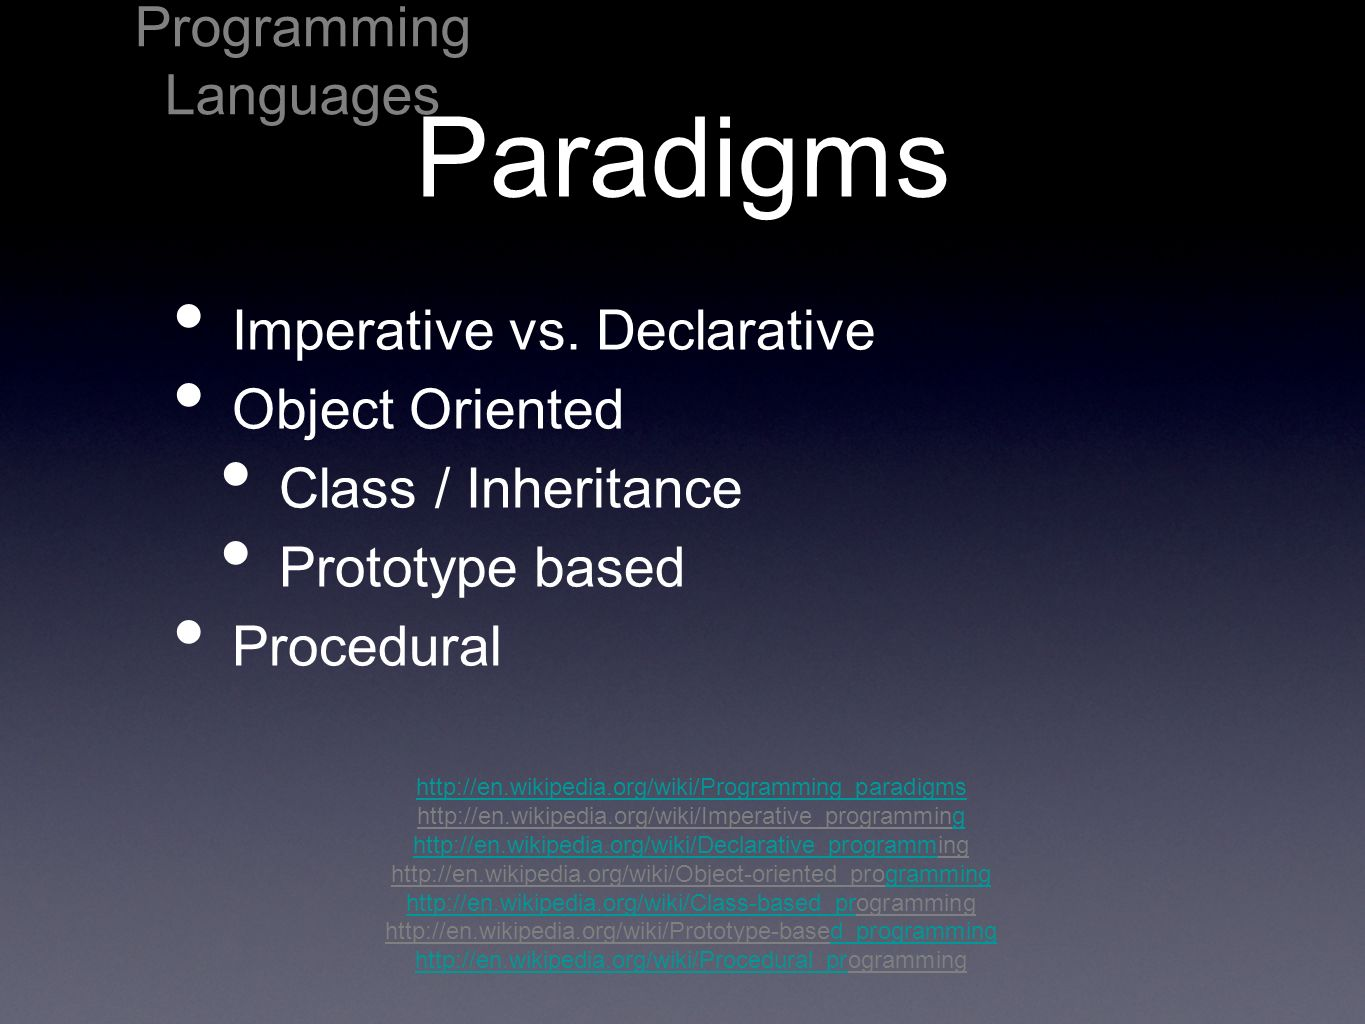 Paradigms Imperative vs. Declarative Object Oriented Class / Inheritance Prototype based Procedural Programming Languages http://en.wikipedia.org/wiki